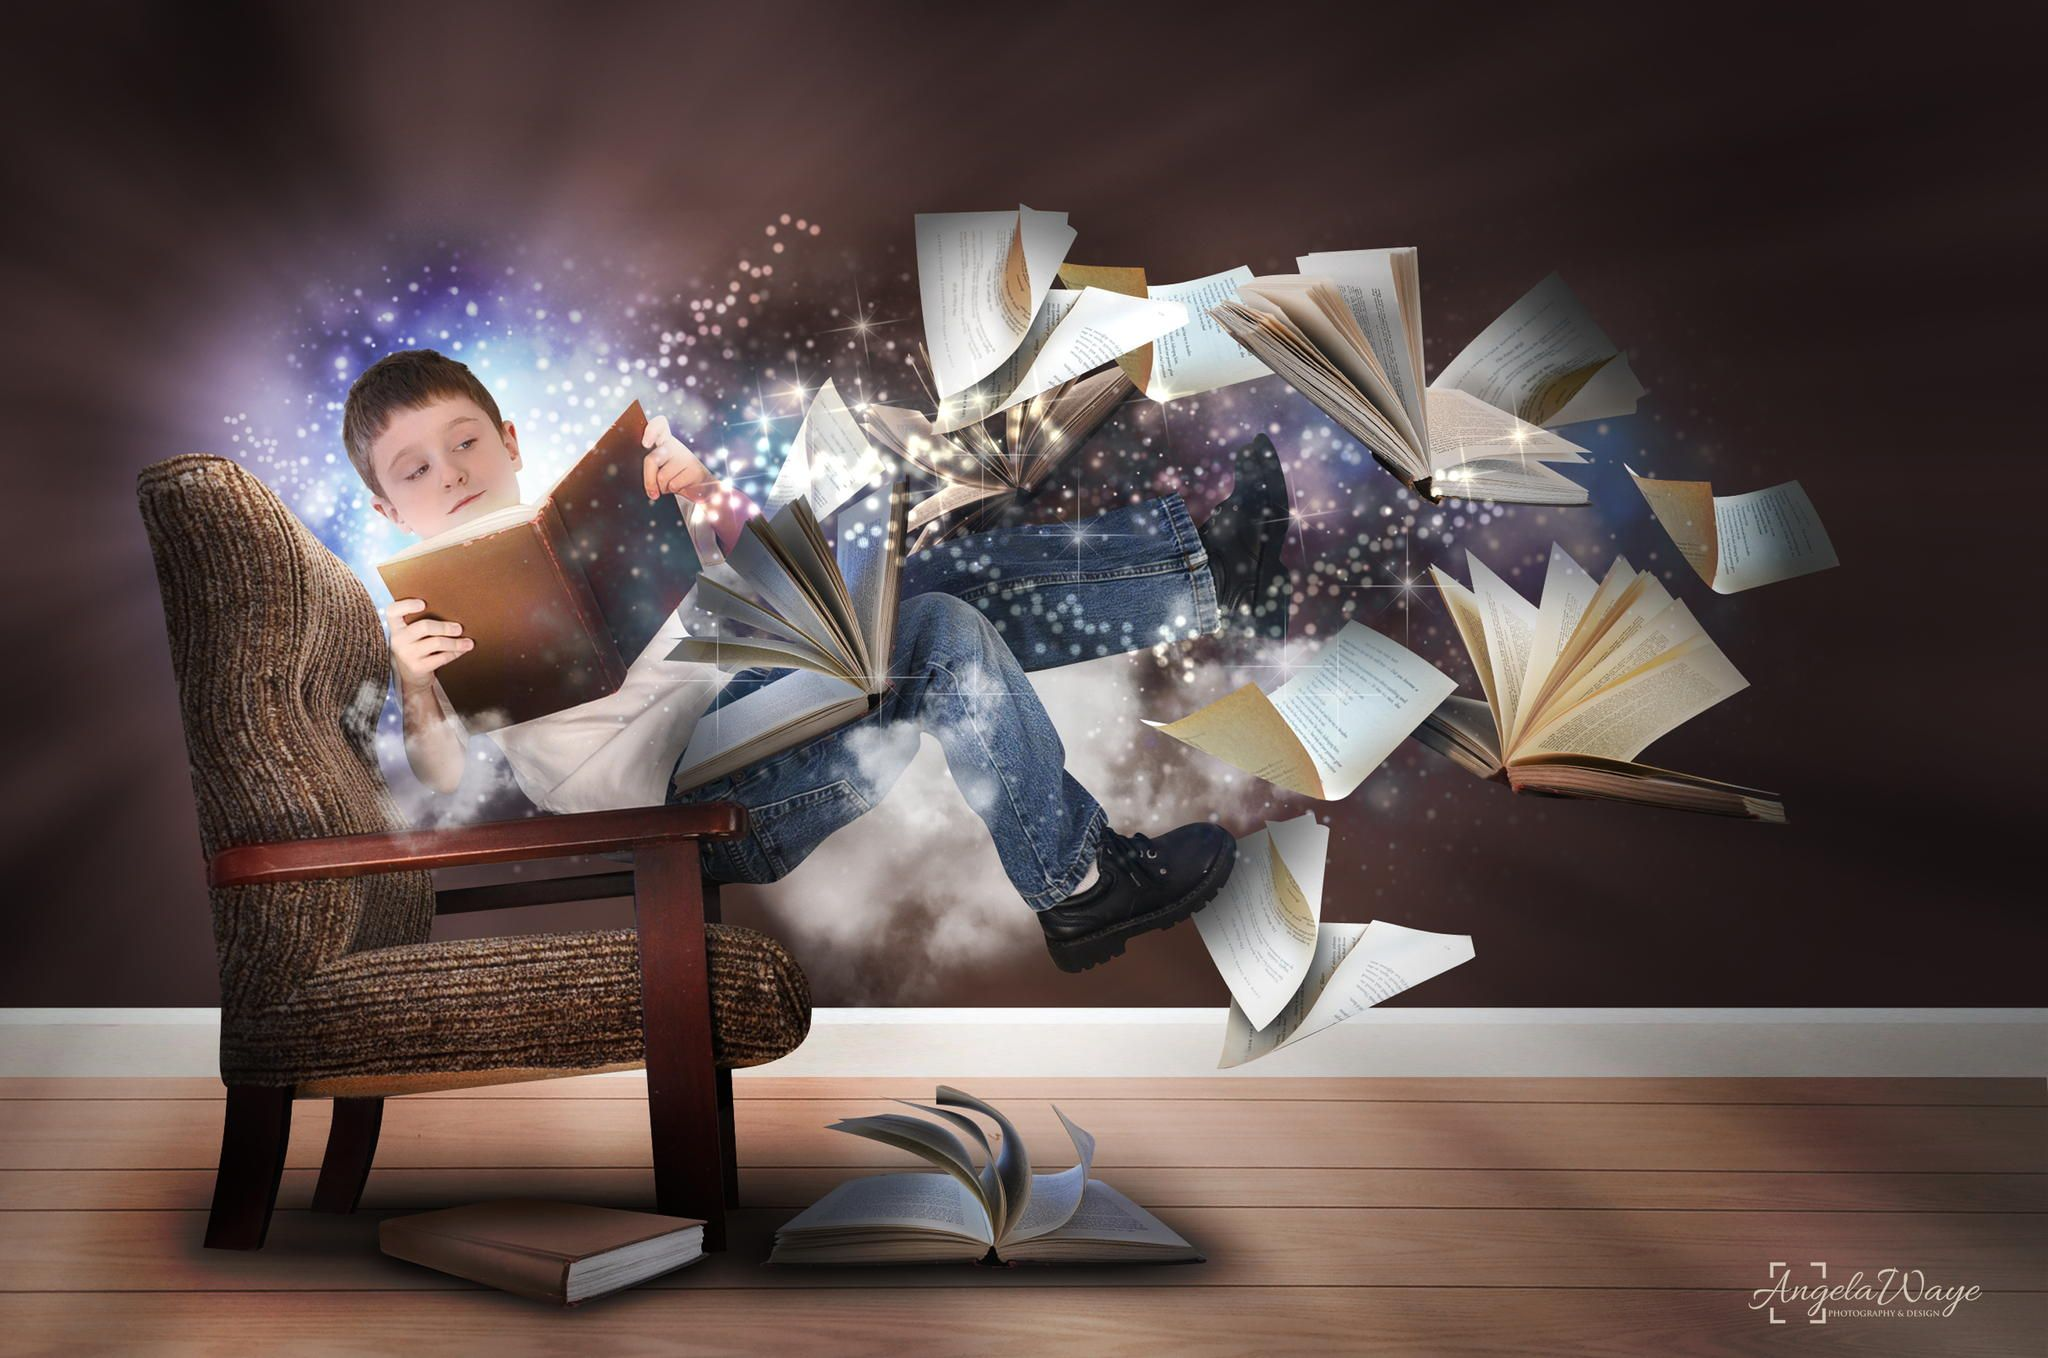 Imagination Boy Reading Books in Chair by Angela Waye on 500px